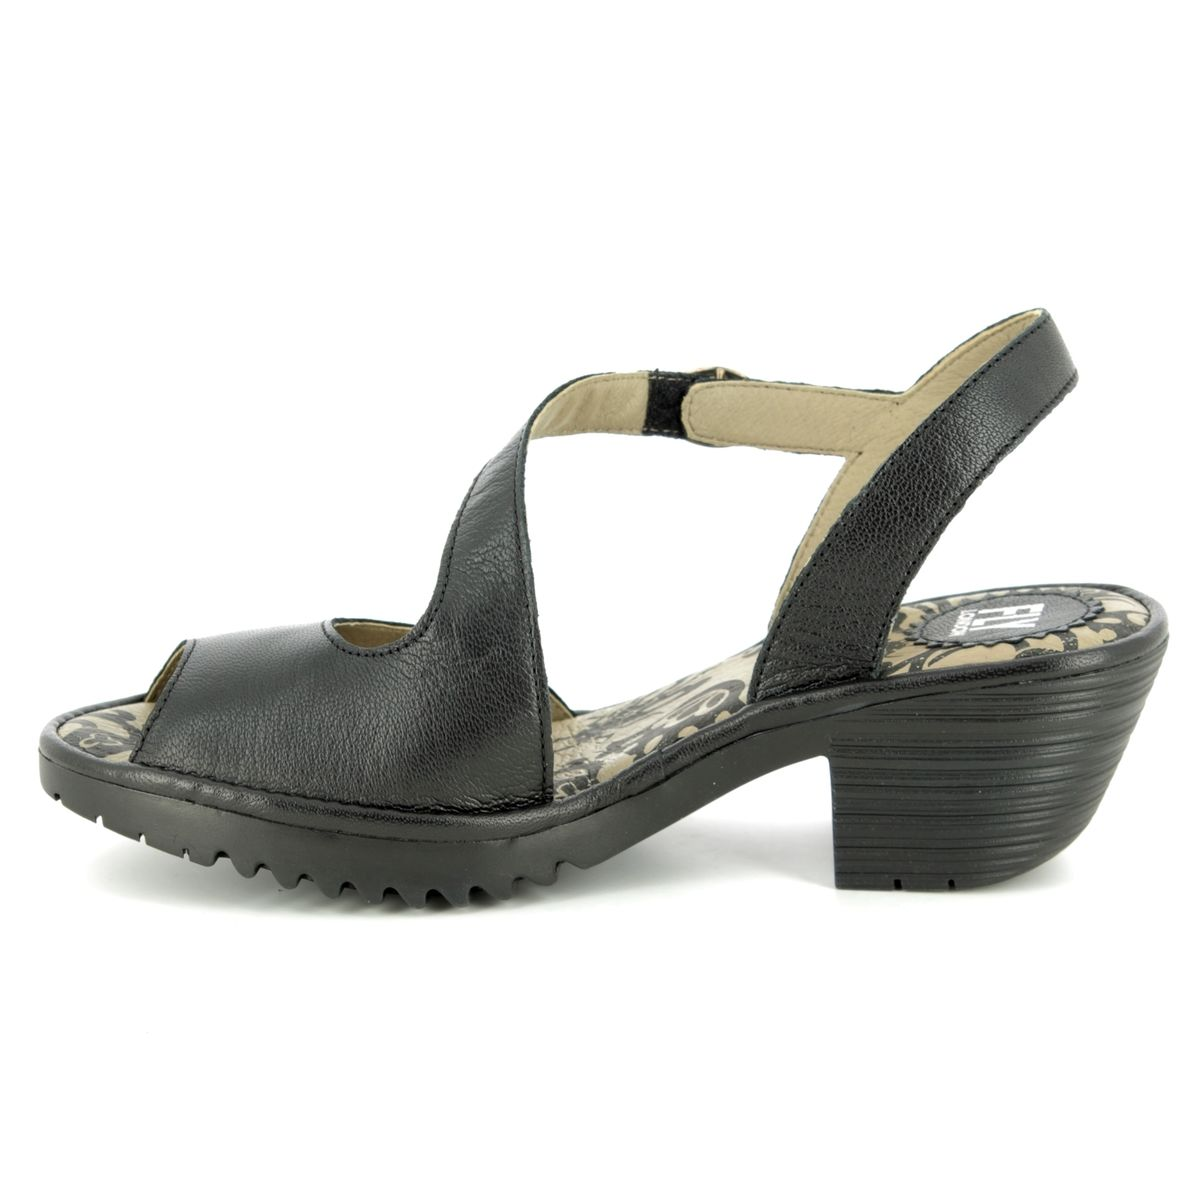 Fly London Wyno P501023 000 Black Leather Wedge Sandals